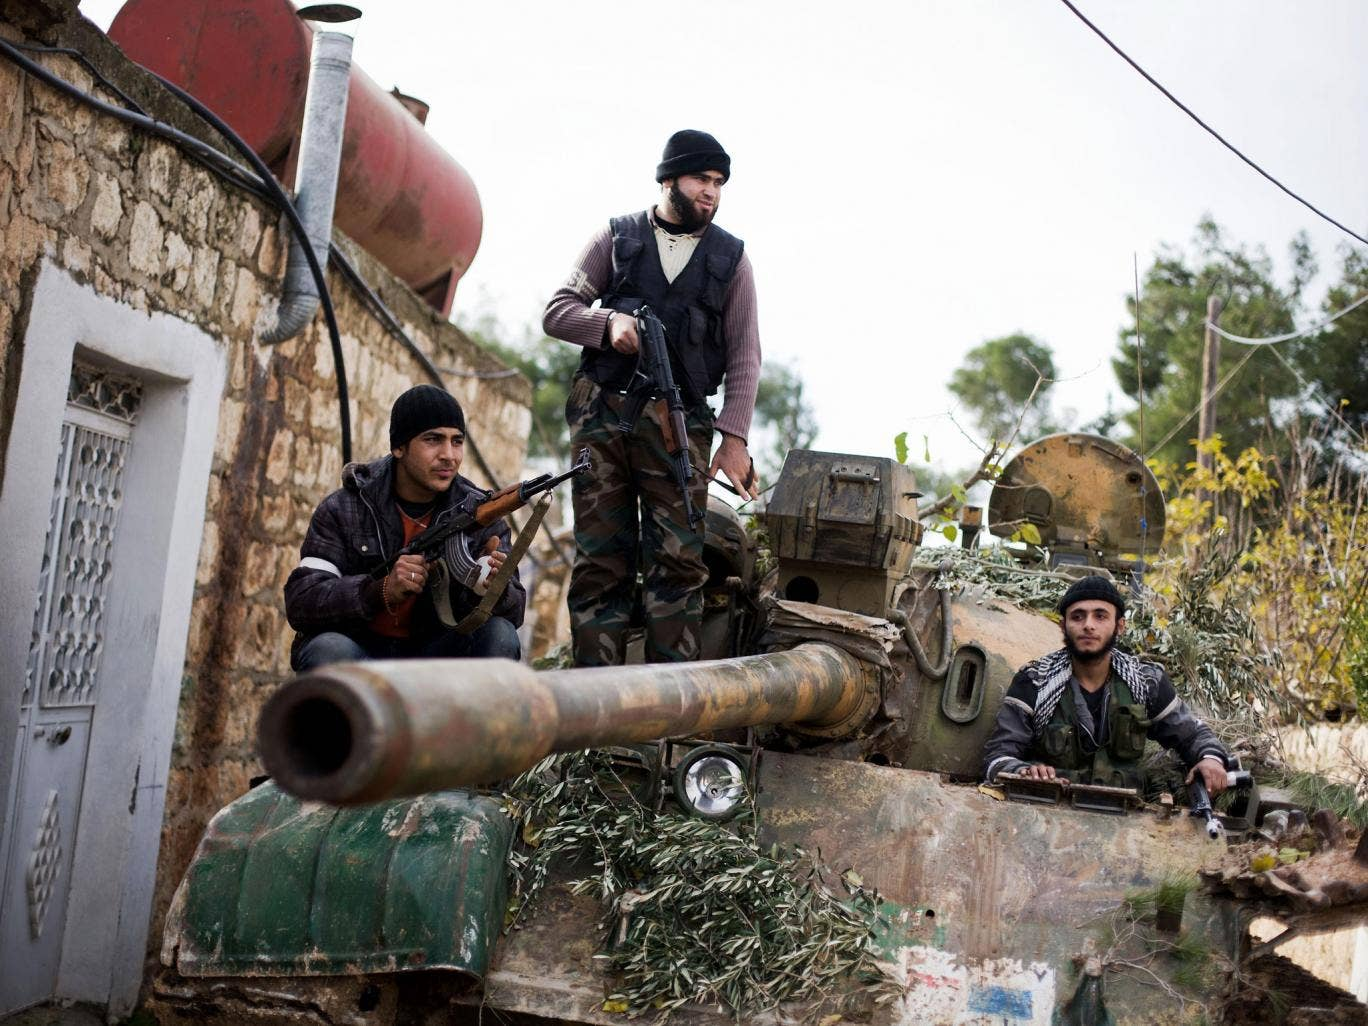 Kurdish members of the Free Syrian Army on a tank stolen from regime forces in the north of Aleppo province